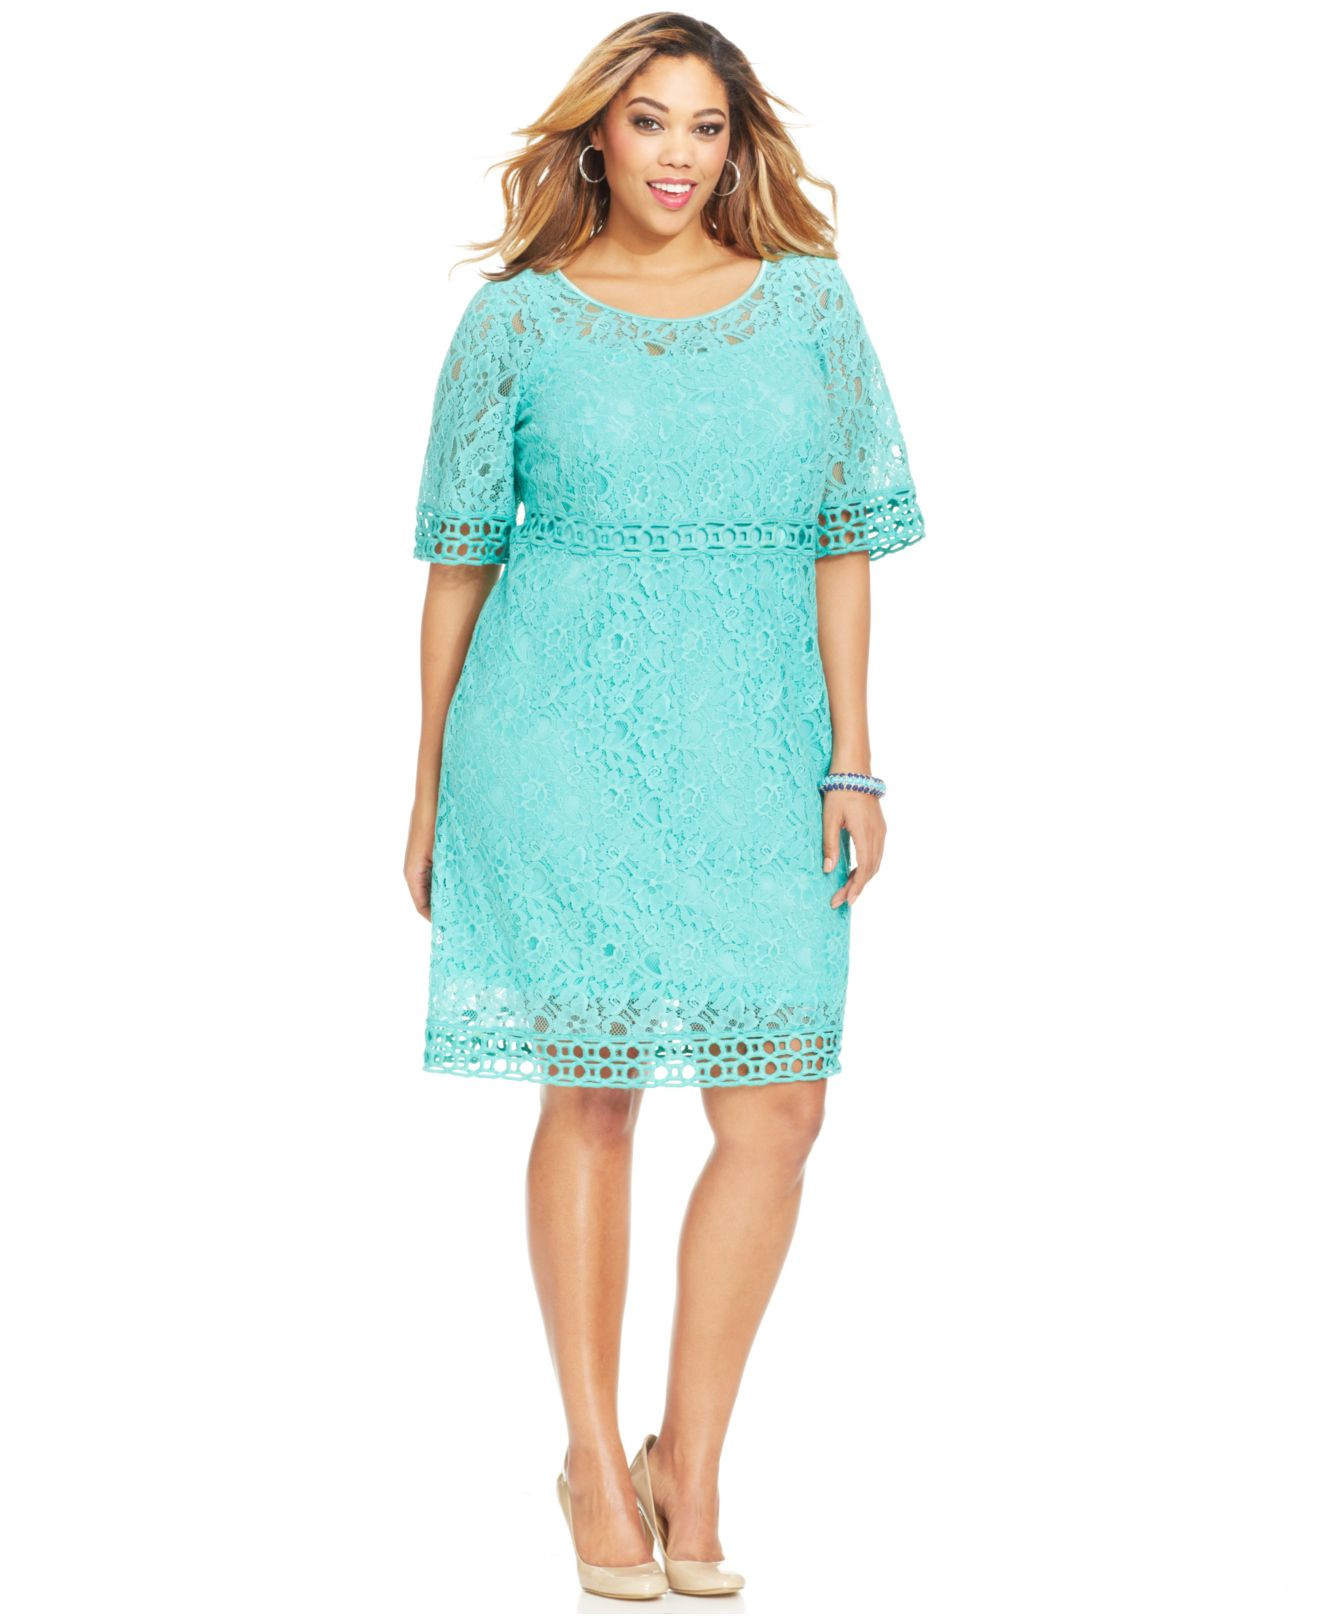 Crochet Clothing Inspirational Crochet Lace Dress Plus Size Hairstyle for Women & Man Of Awesome 49 Images Crochet Clothing